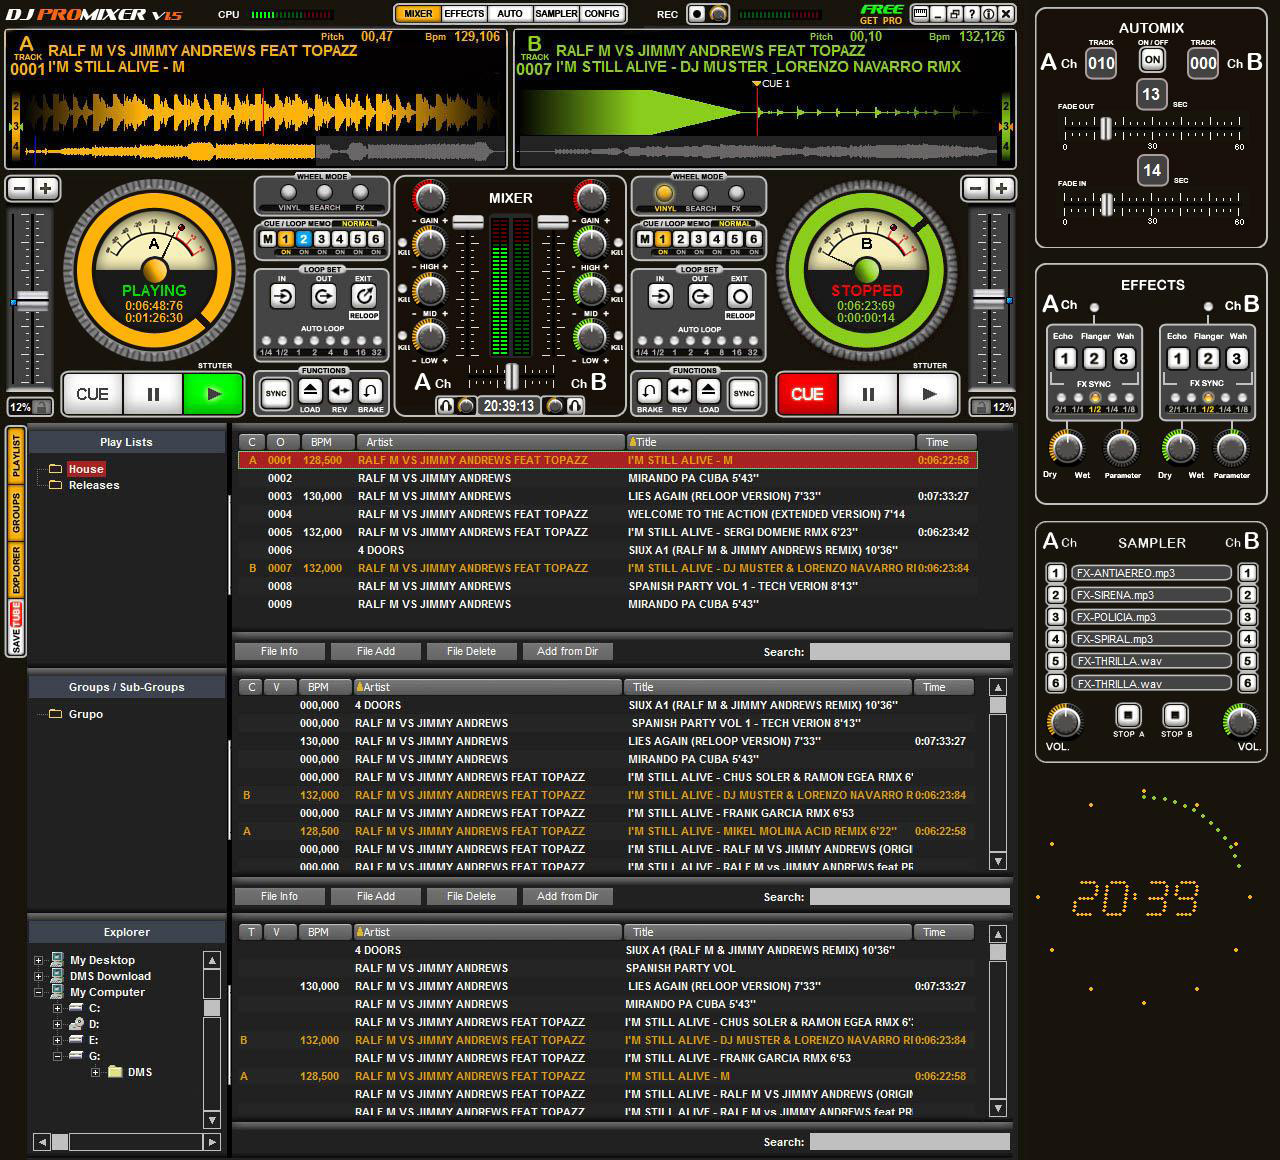 Professional Dj Mixer Software Free Download